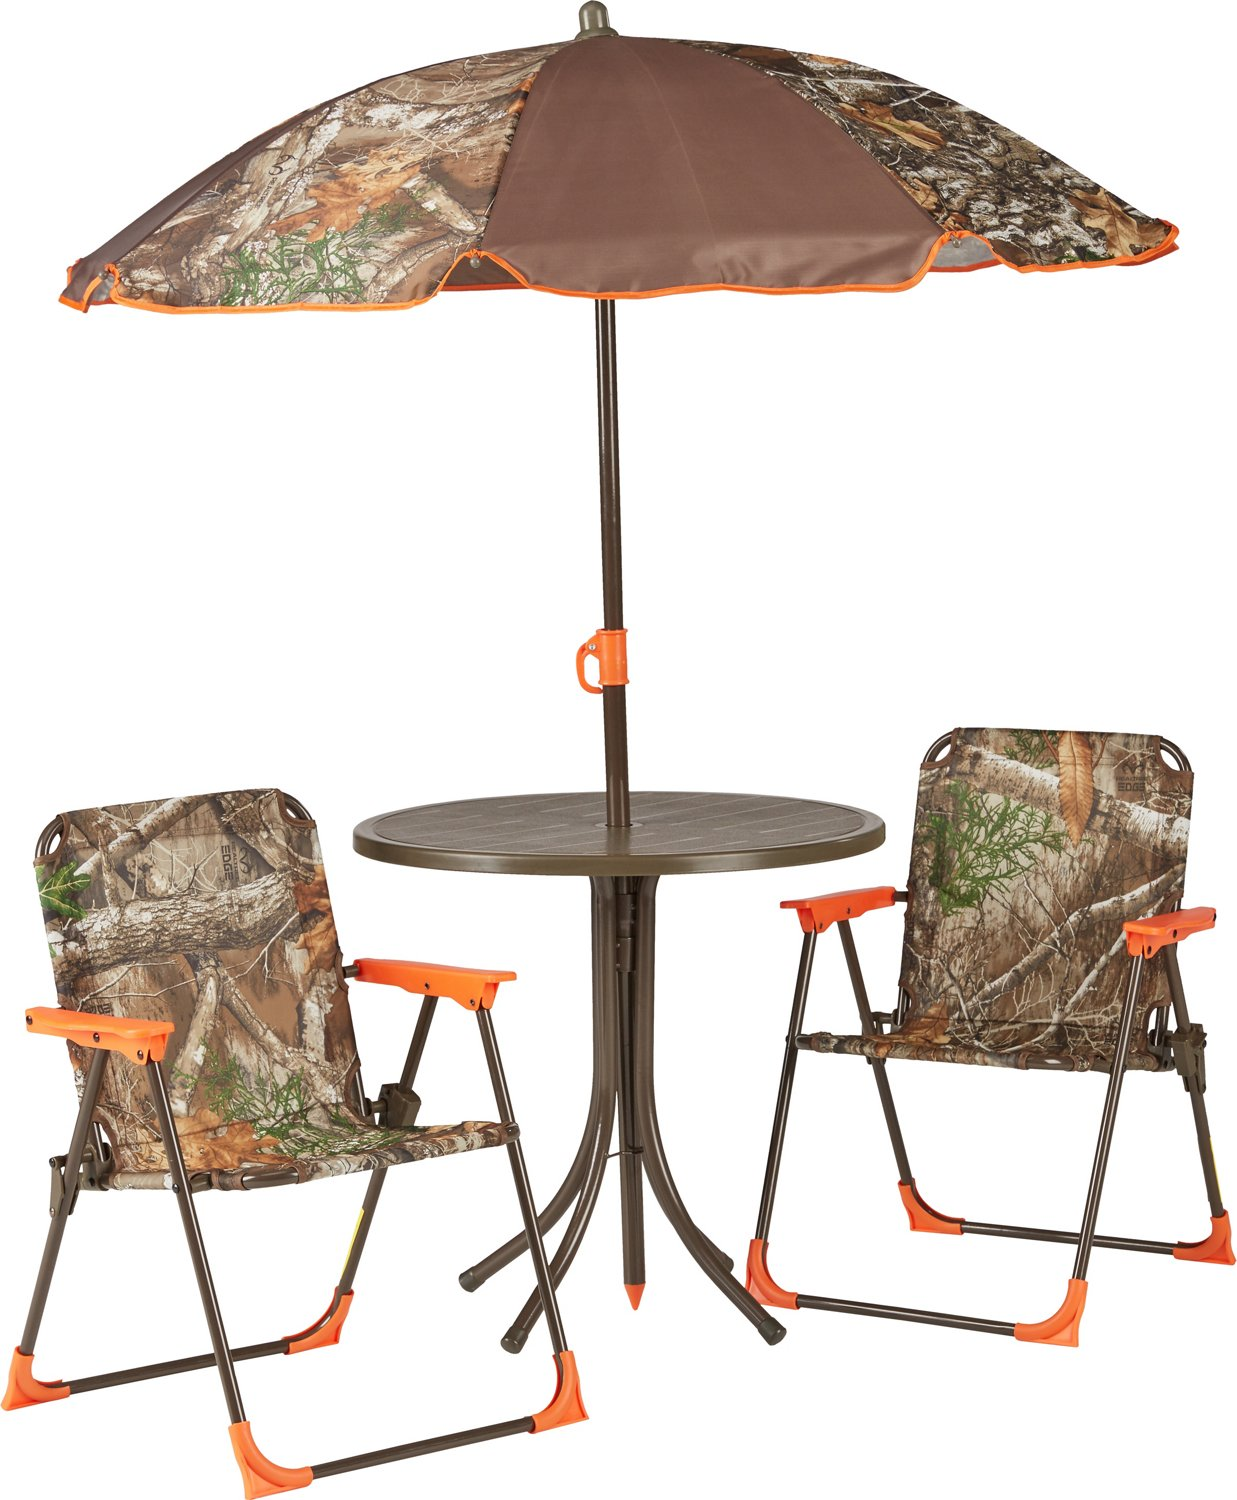 academy sports patio chairs kitchen table chair cushions furniture display product reviews for mosaic realtree xtra camo 4 piece set